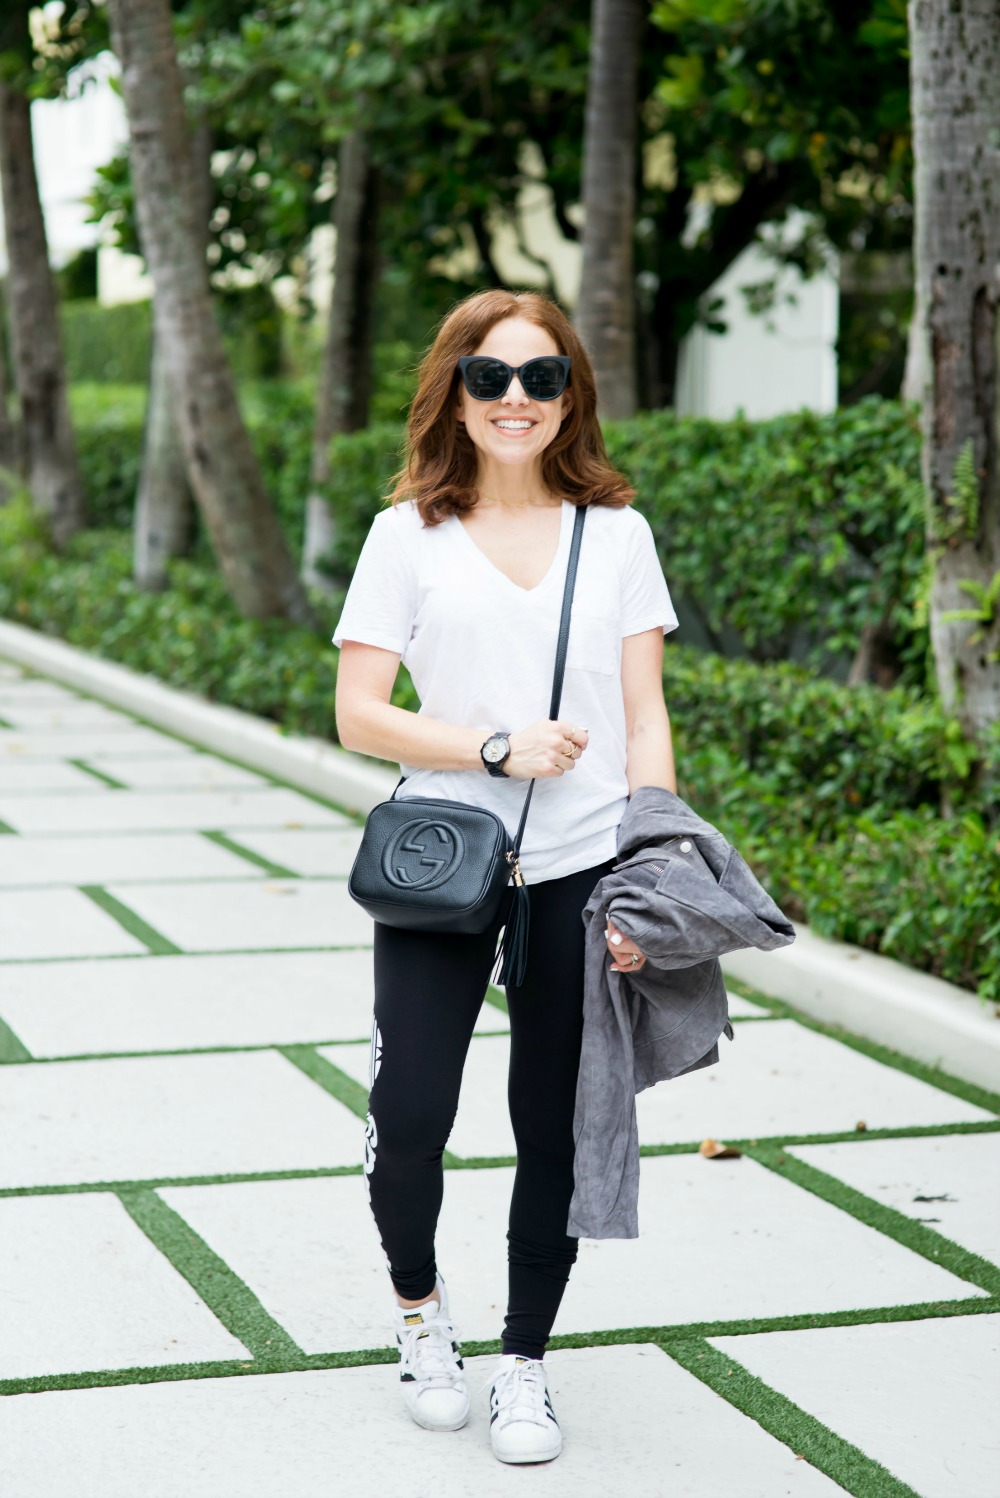 athleisure uniform, great mom style look // the modern savvy